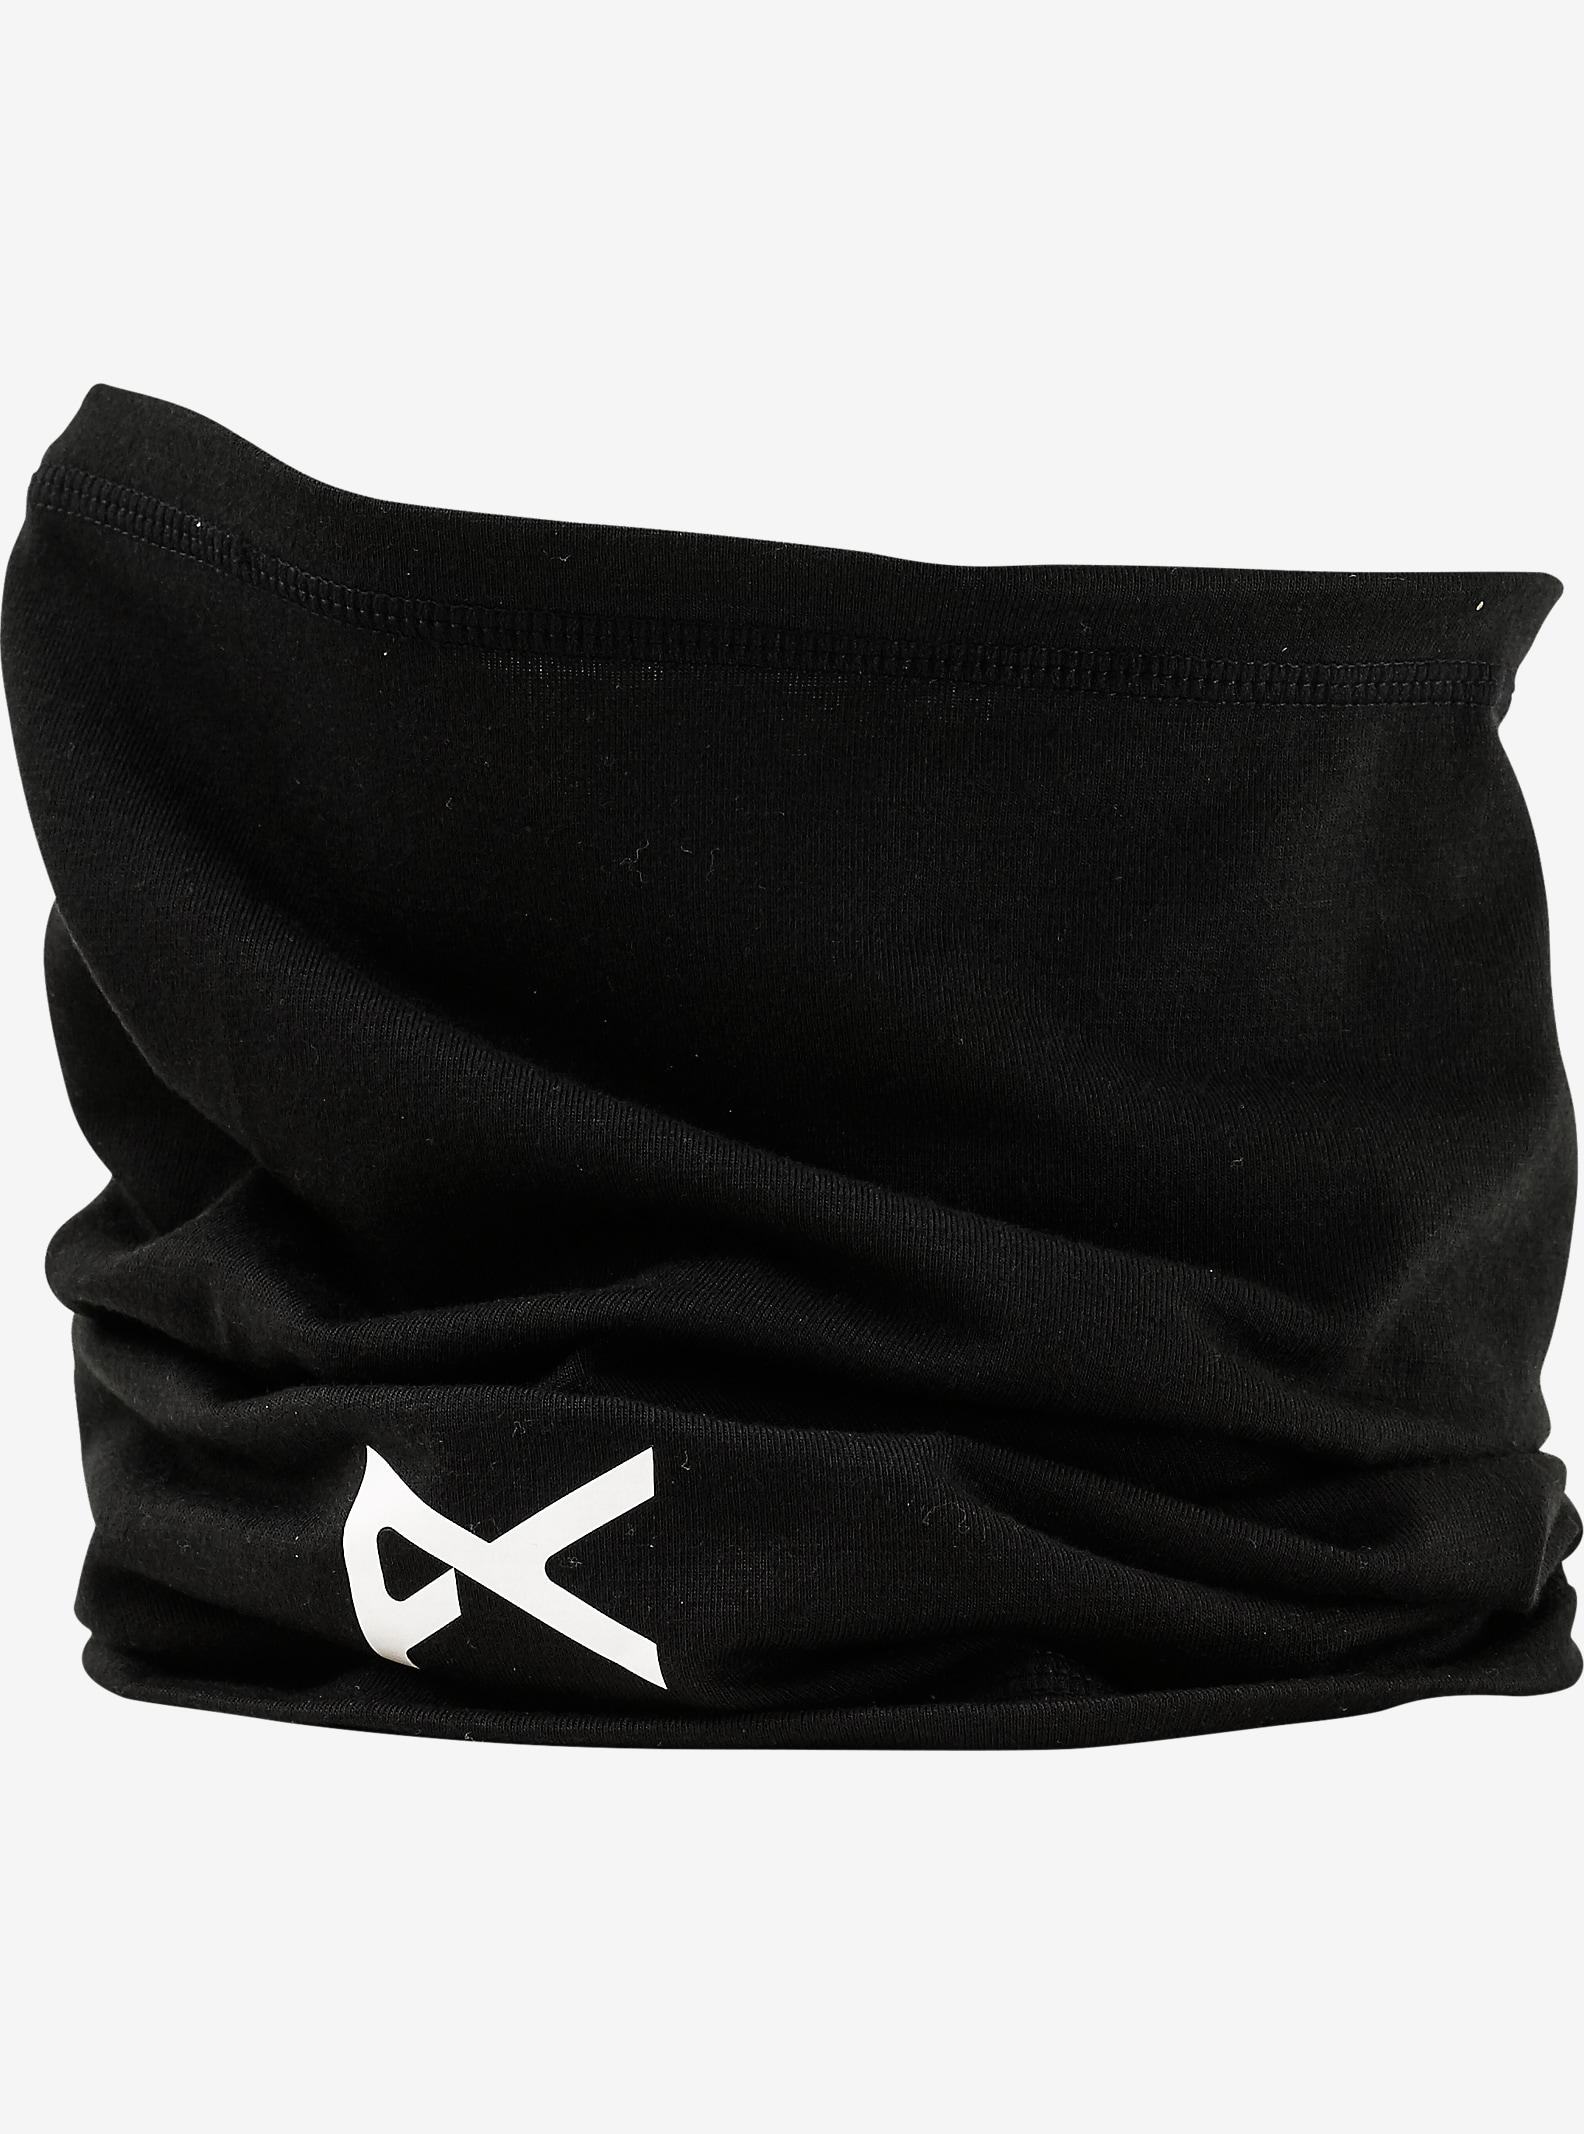 anon. Hellbrook Neck Warmer shown in Black